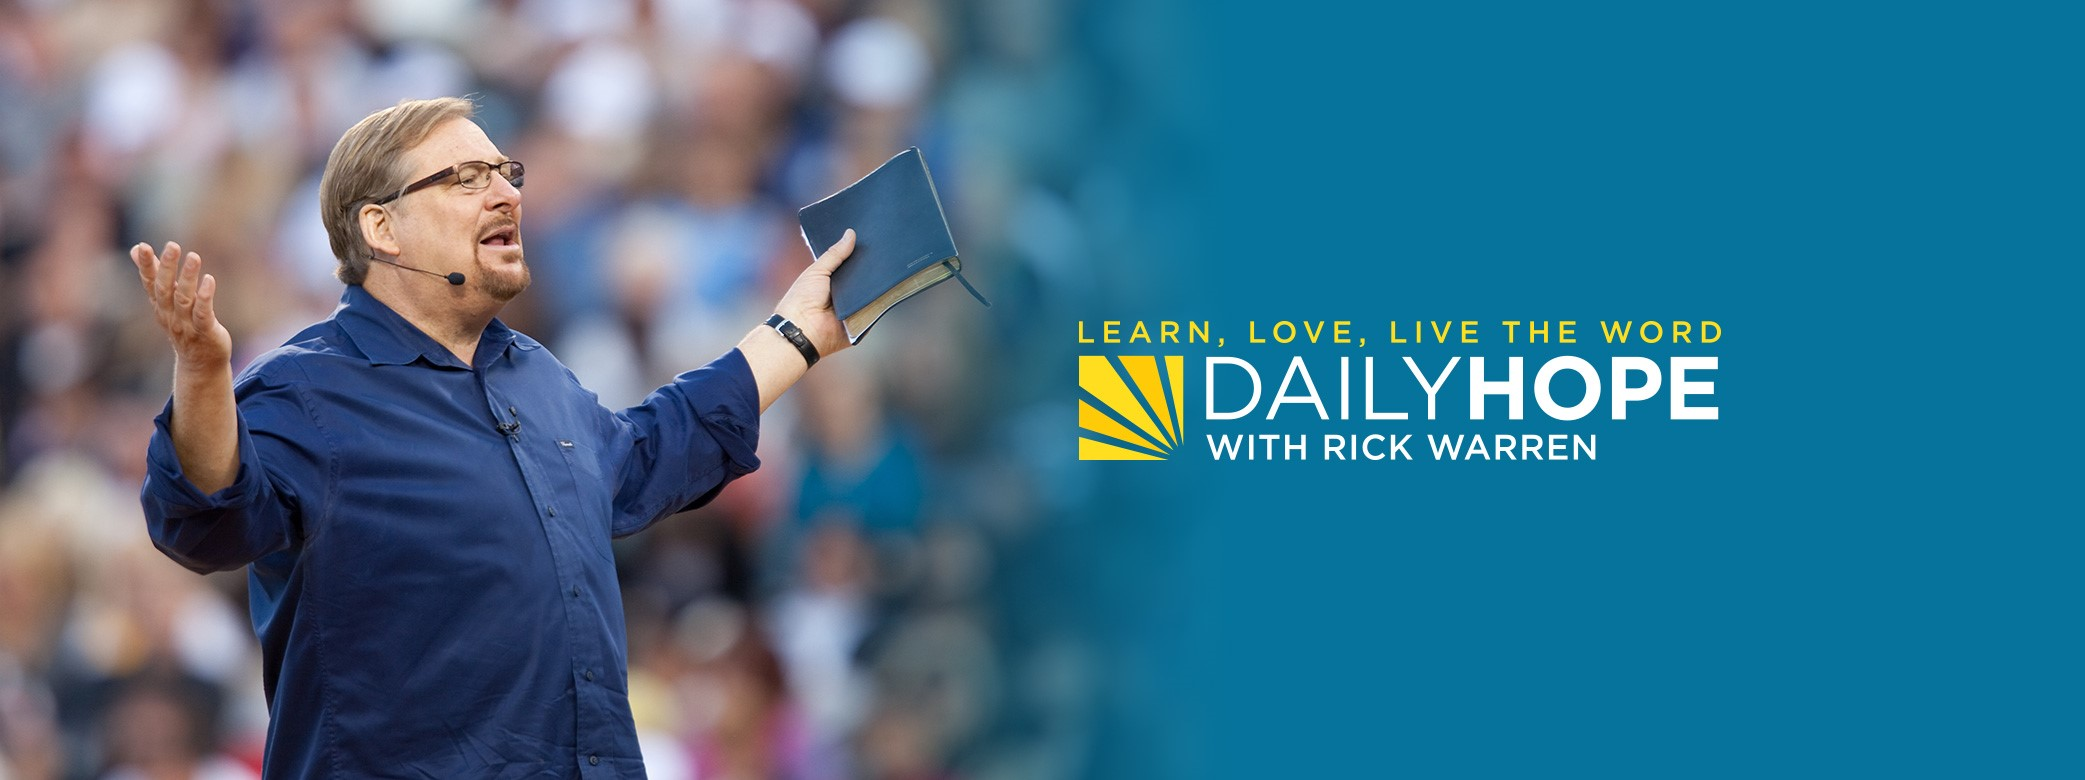 Rick Warren Daily Hope Devotional 25th October 2020, Rick Warren Daily Hope Devotional 25th October 2020 – Three Things to Focus on Instead of Yourself, Premium News24